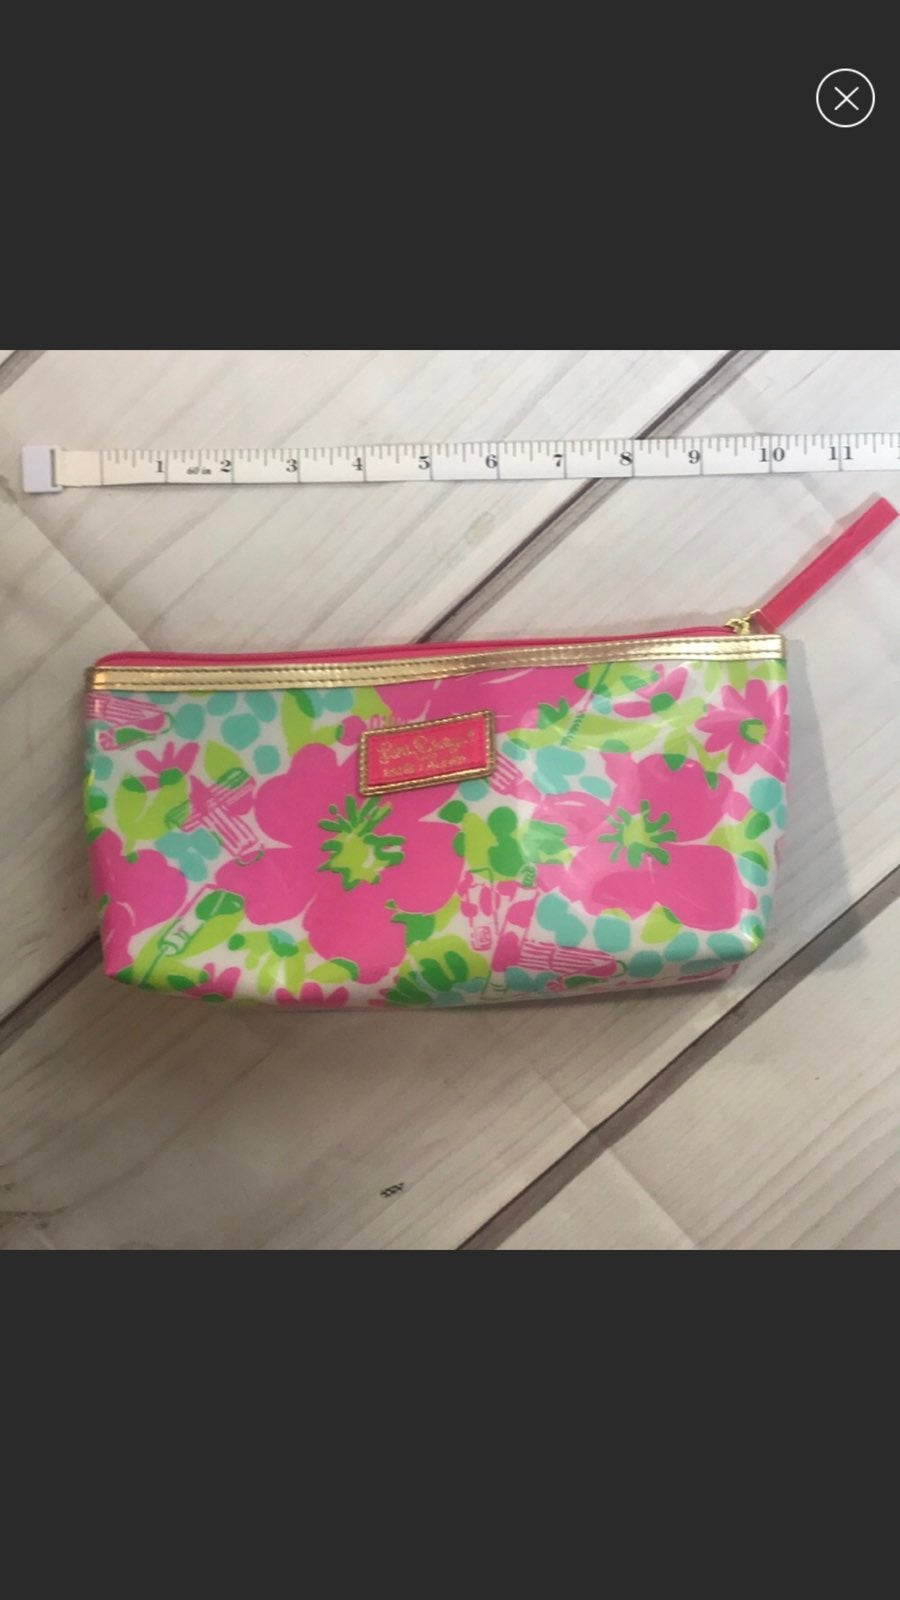 Lilly Pulitzer for Estee Lauder Makeup B